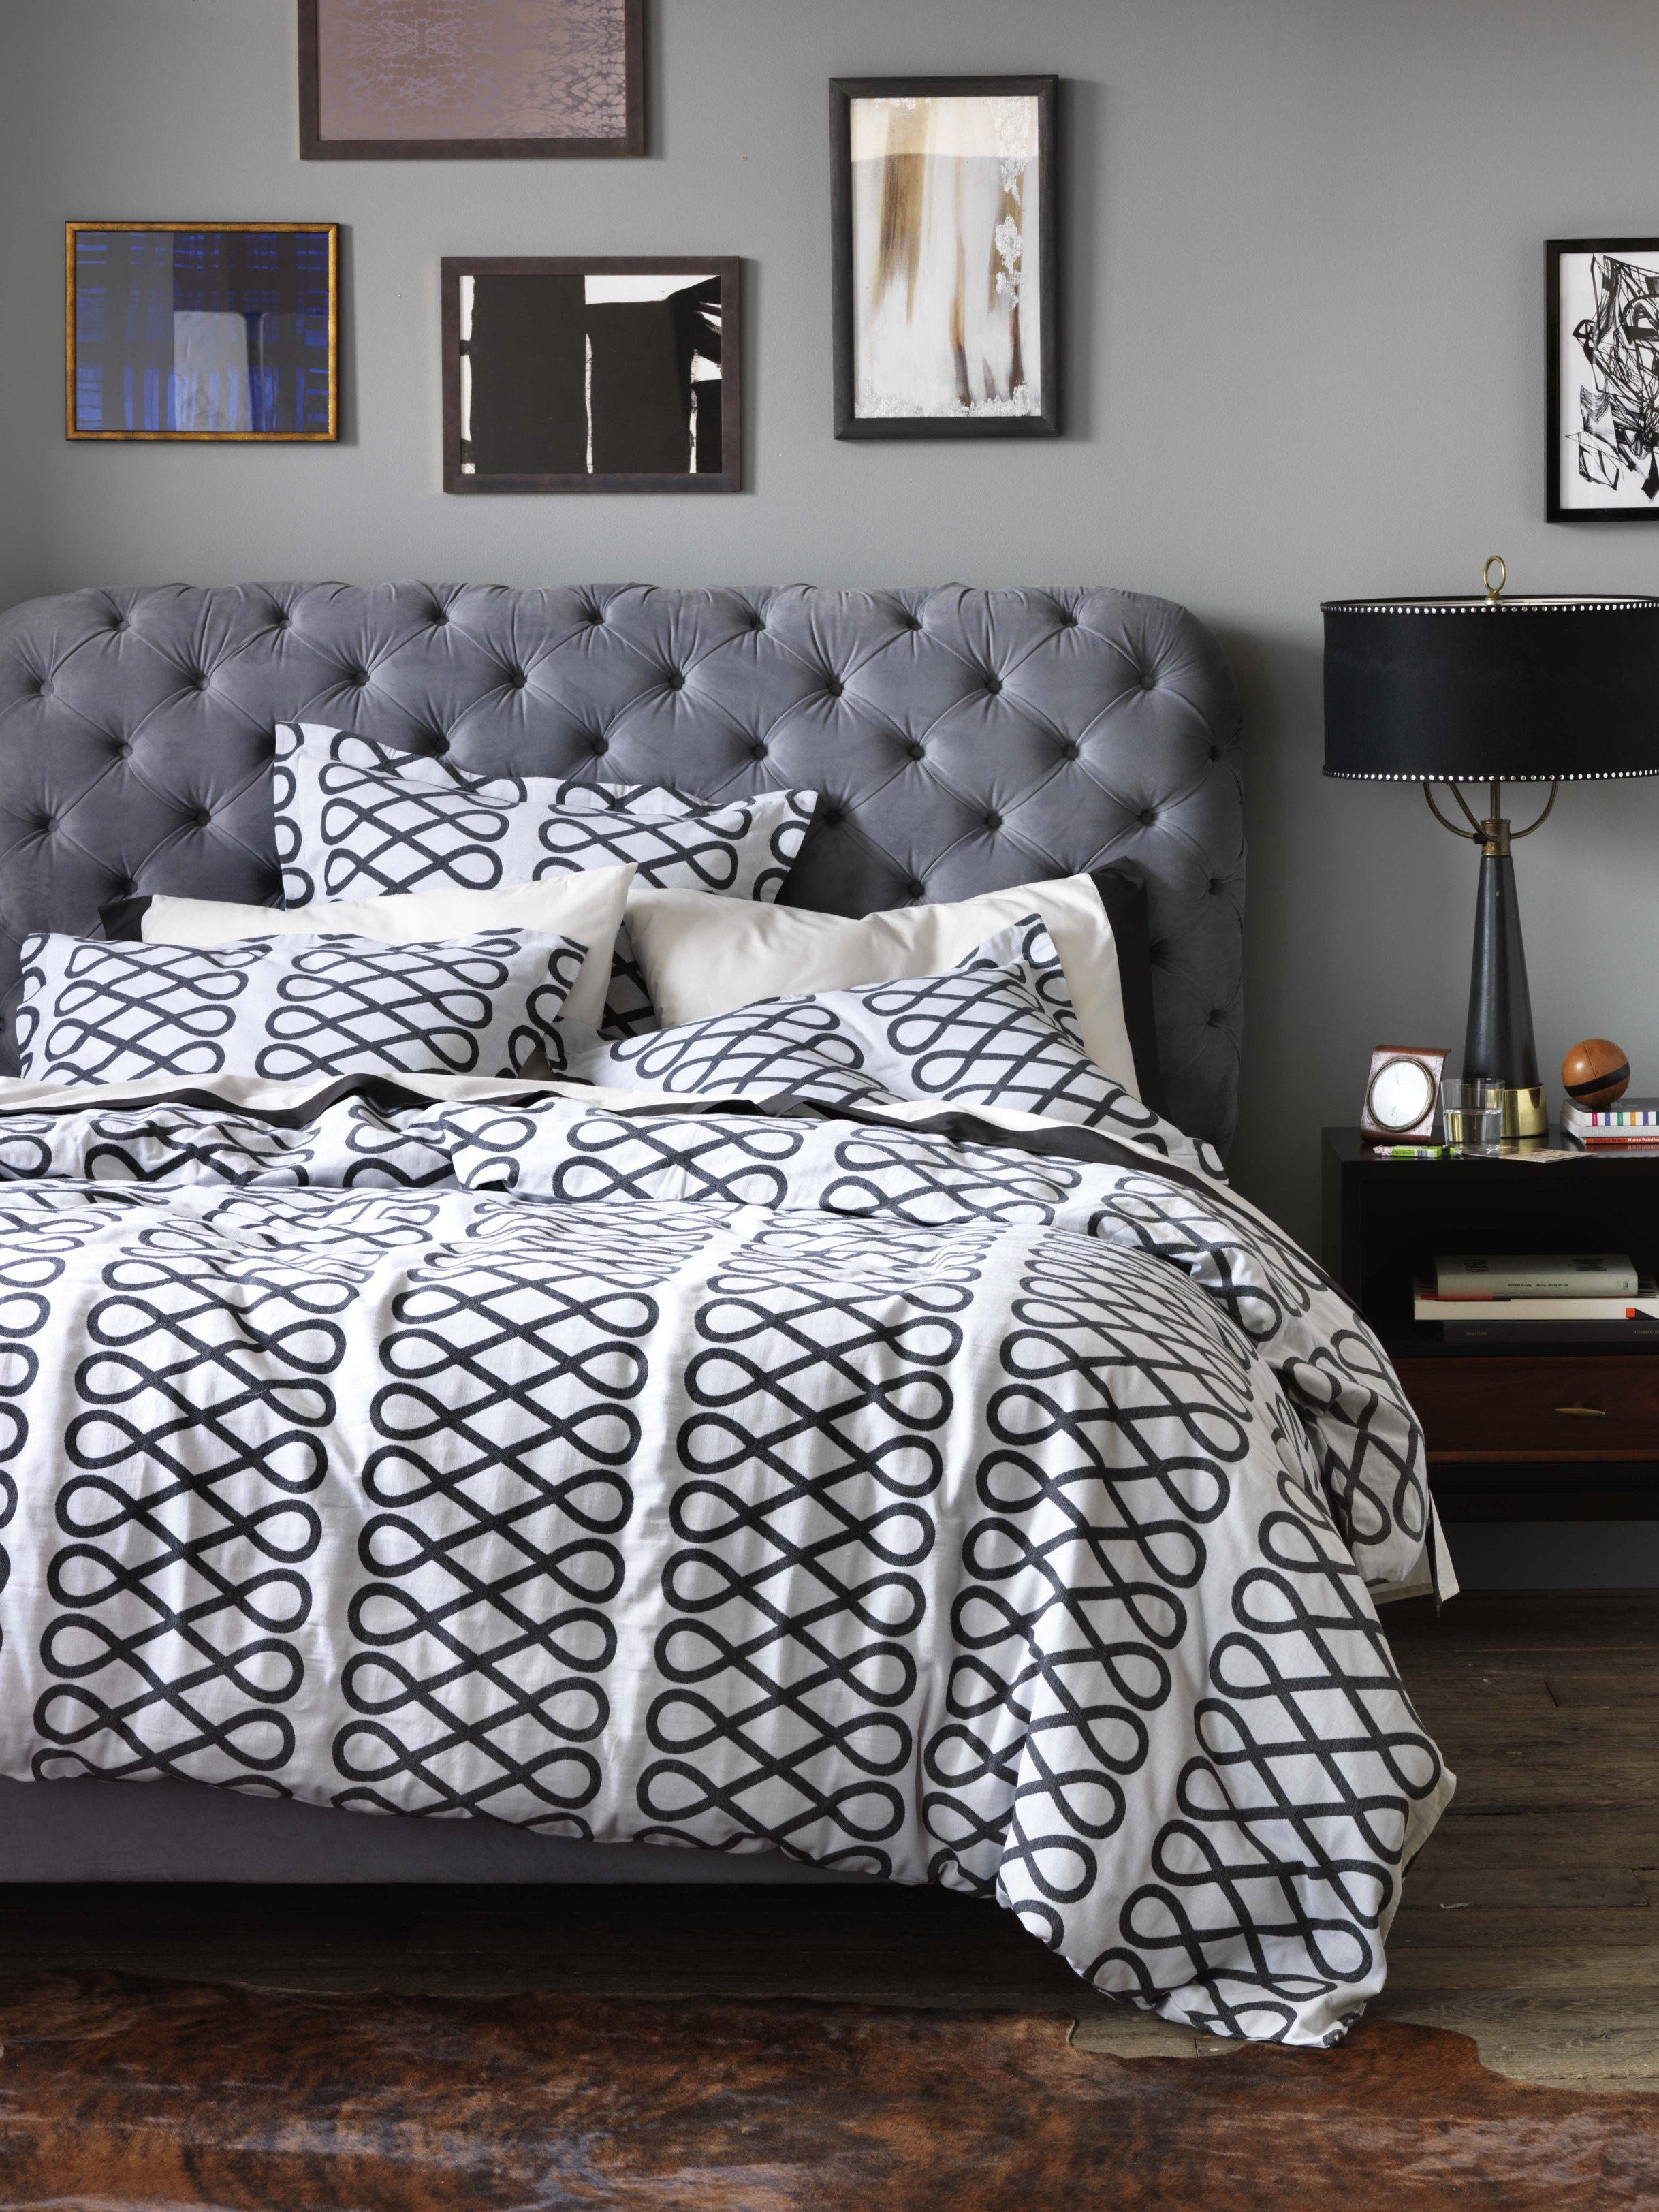 Loop_Ink_Duvet_Lifestyle_All_Modern_Bedding_Cococozy